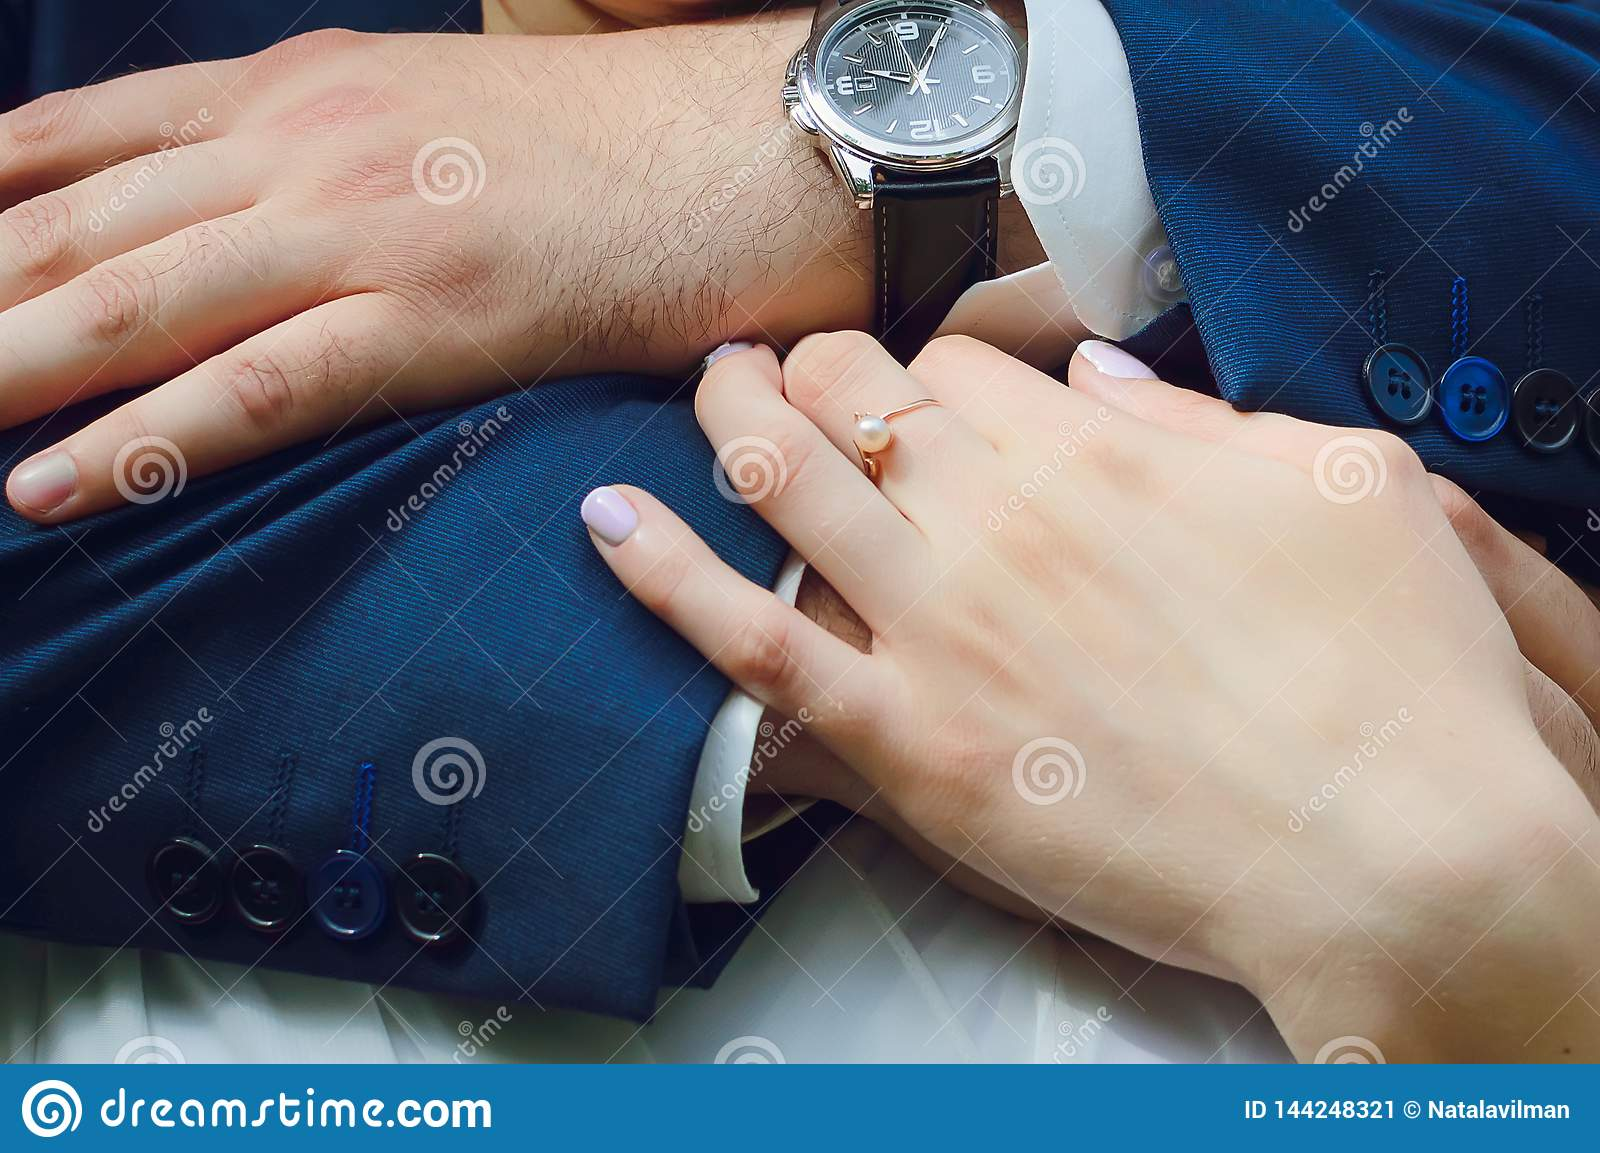 Hands of a man and a woman, close-up. Embrace, love, wedding